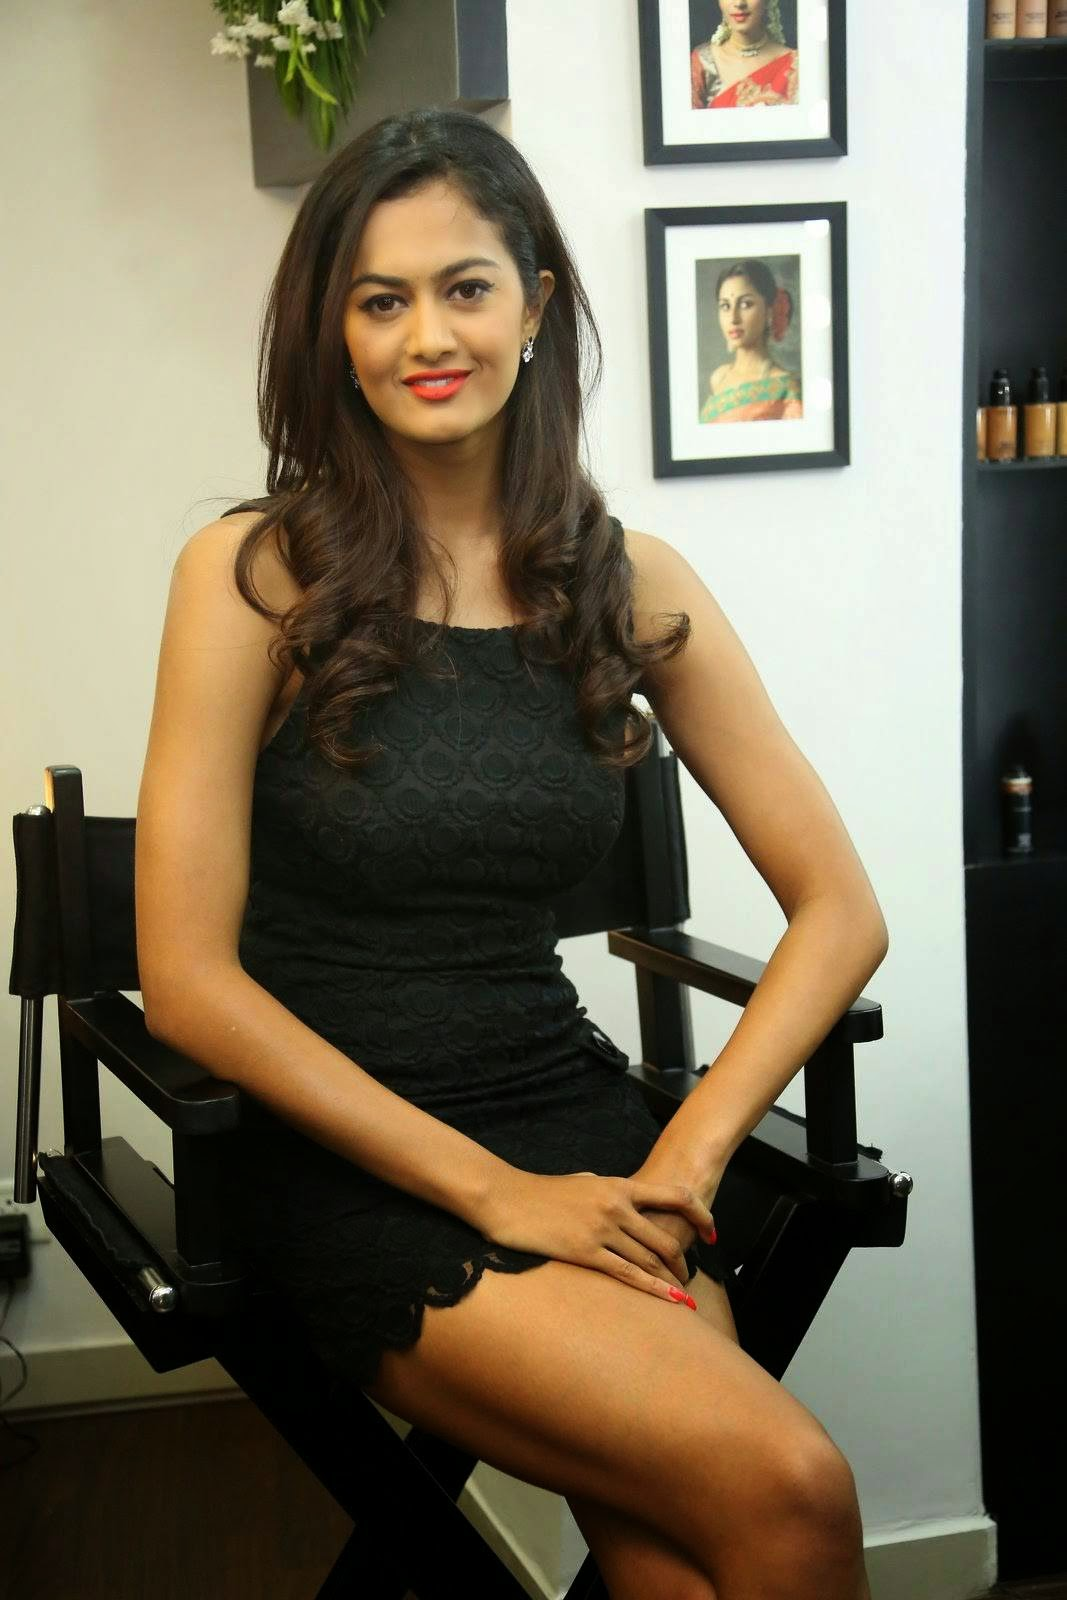 Shubra Aiyappa Photoshoot Stills, Shubra Aiyappa Hot Legs & thighs images in Short black Dress